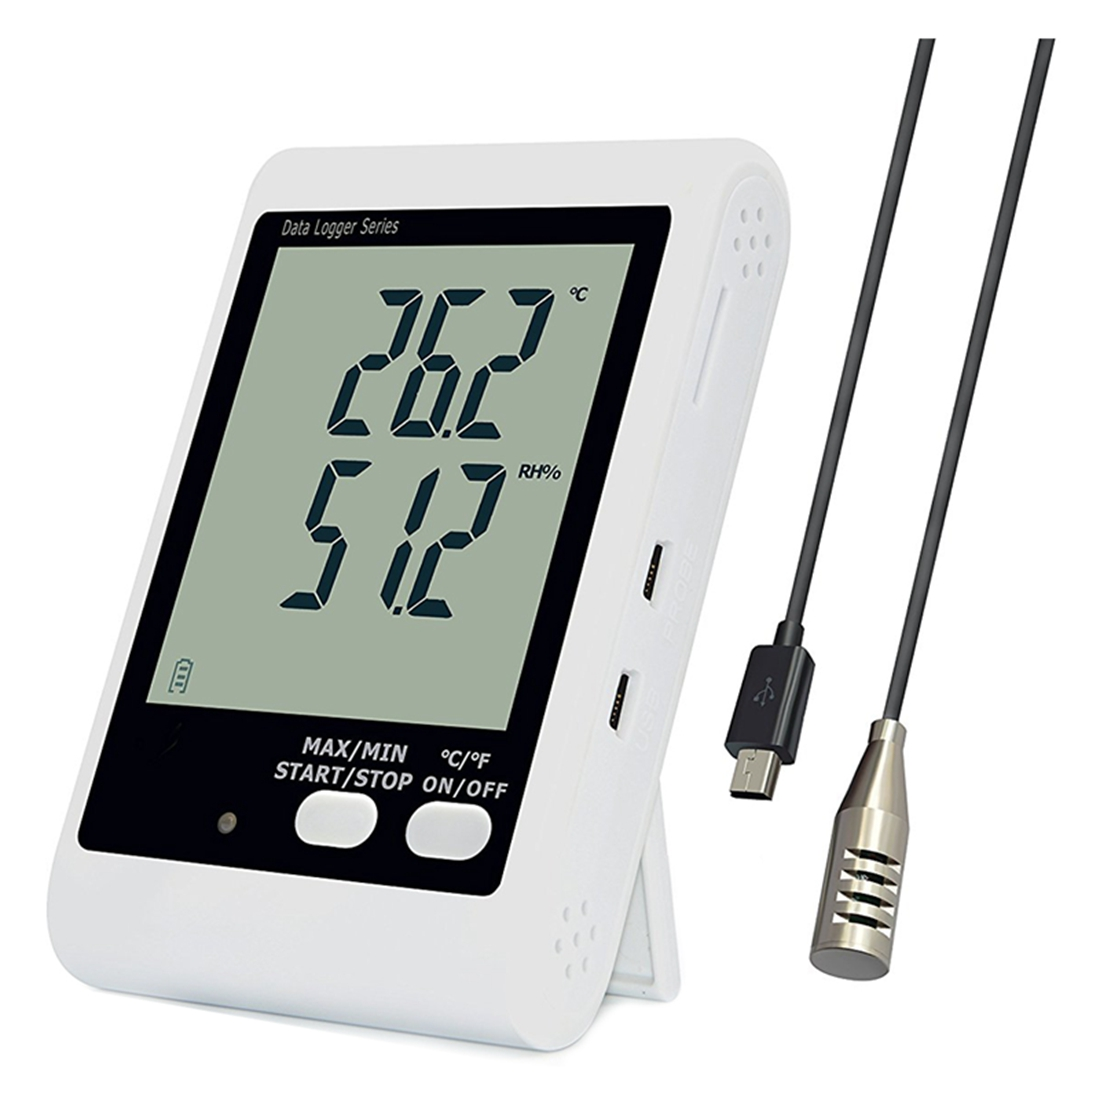 YOWEXA Temperature and humidity loggers with Backlit LCD Display and Sound-light Alarm, 3m External Probe Included free shipping and low temperature alarm 634f 220v electron temperature alarm sound and light alarm thermostats